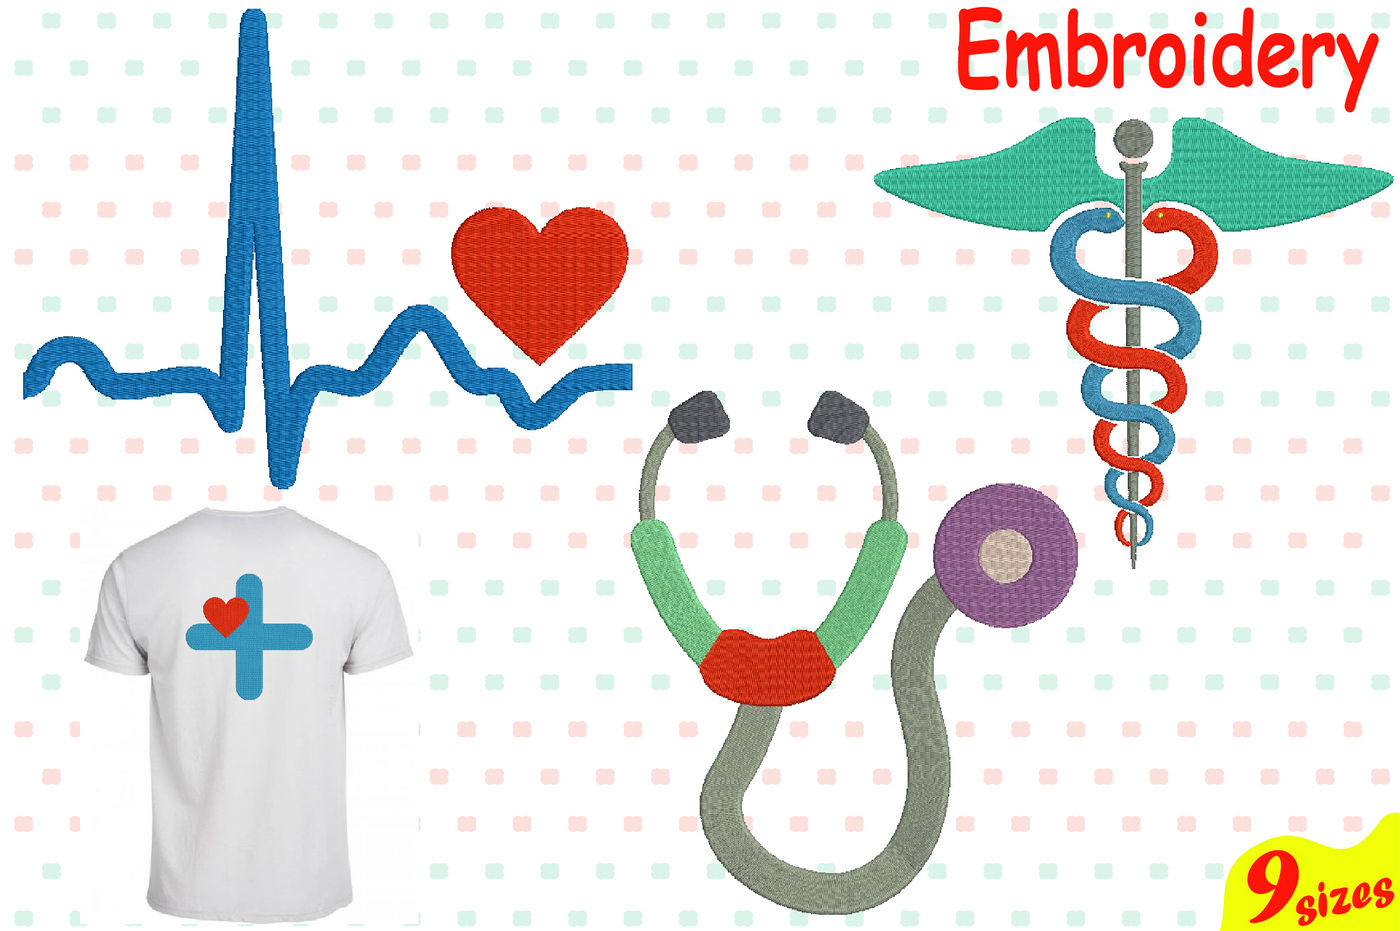 Medic Symbol Designs For Embroidery Machine Instant Download